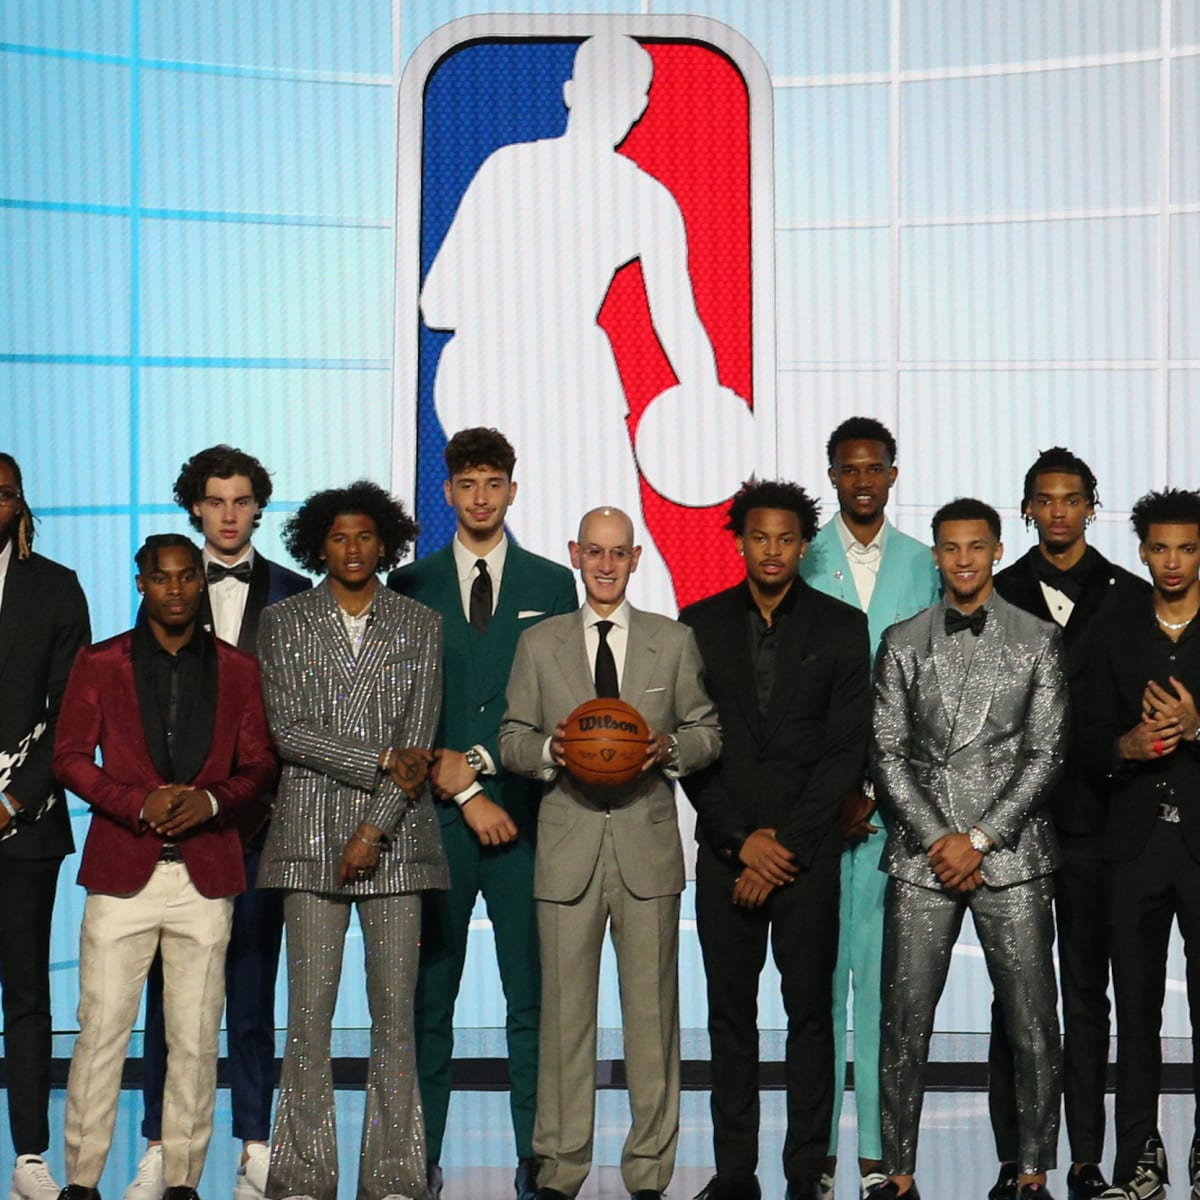 2021 NBA Draft: 10 parting thoughts on trends, surprise picks - Sports  Illustrated